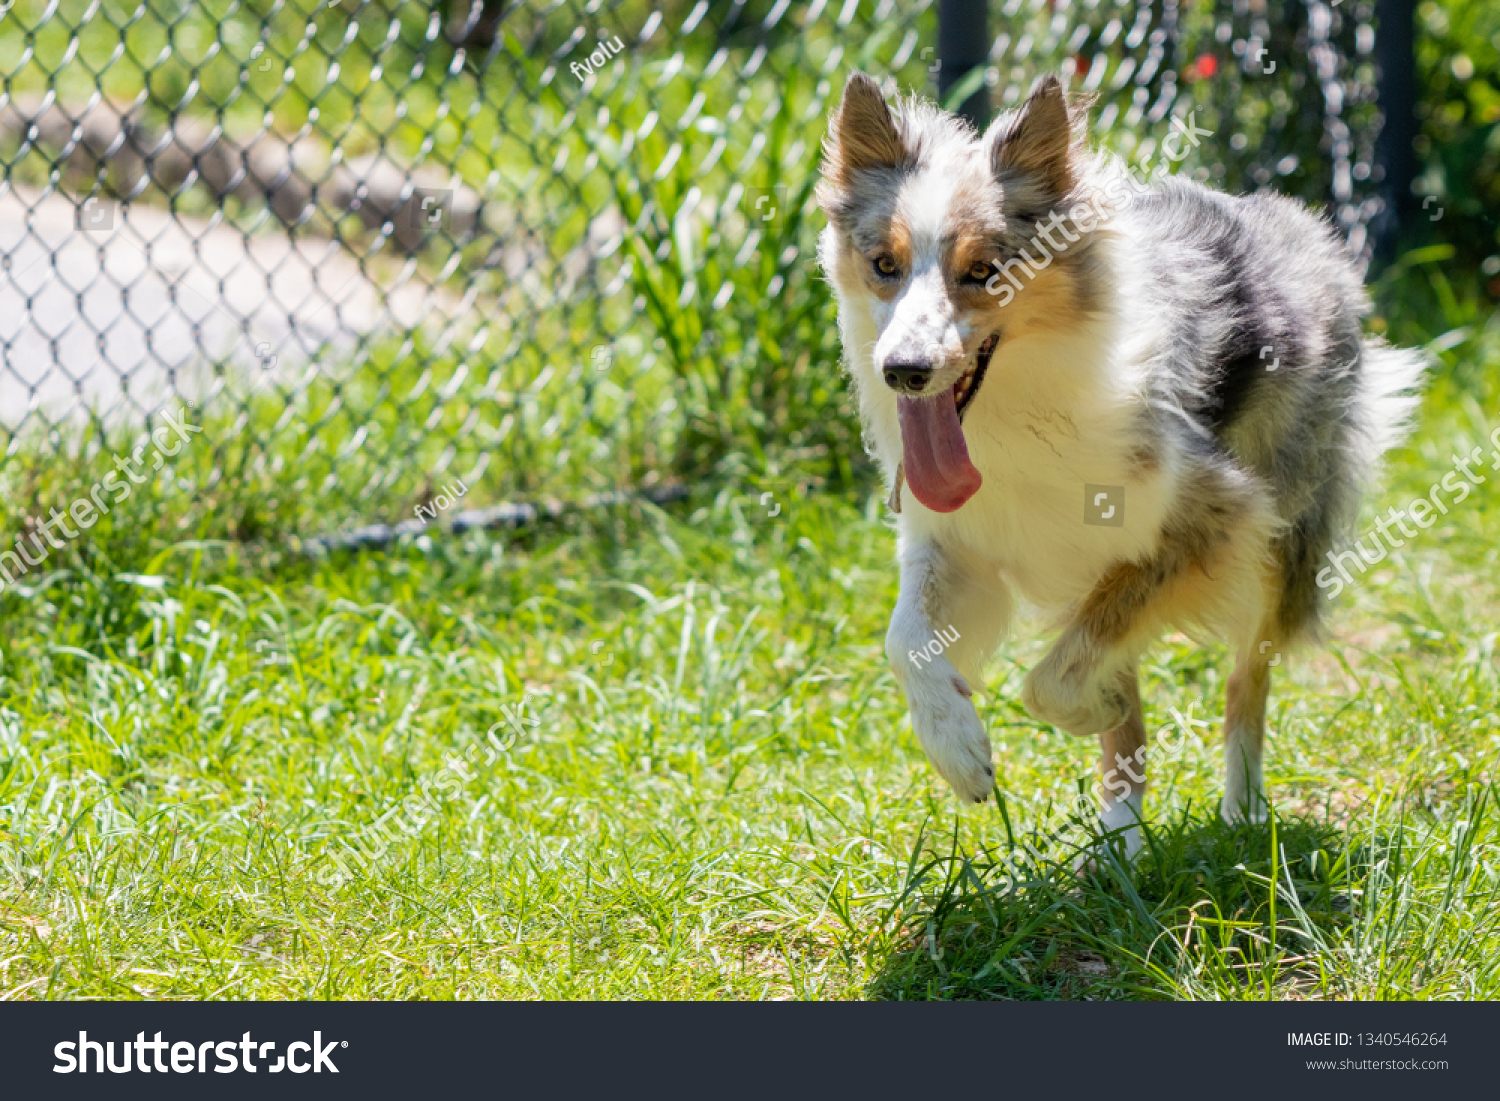 stock-photo-gray-and-white-border-collie